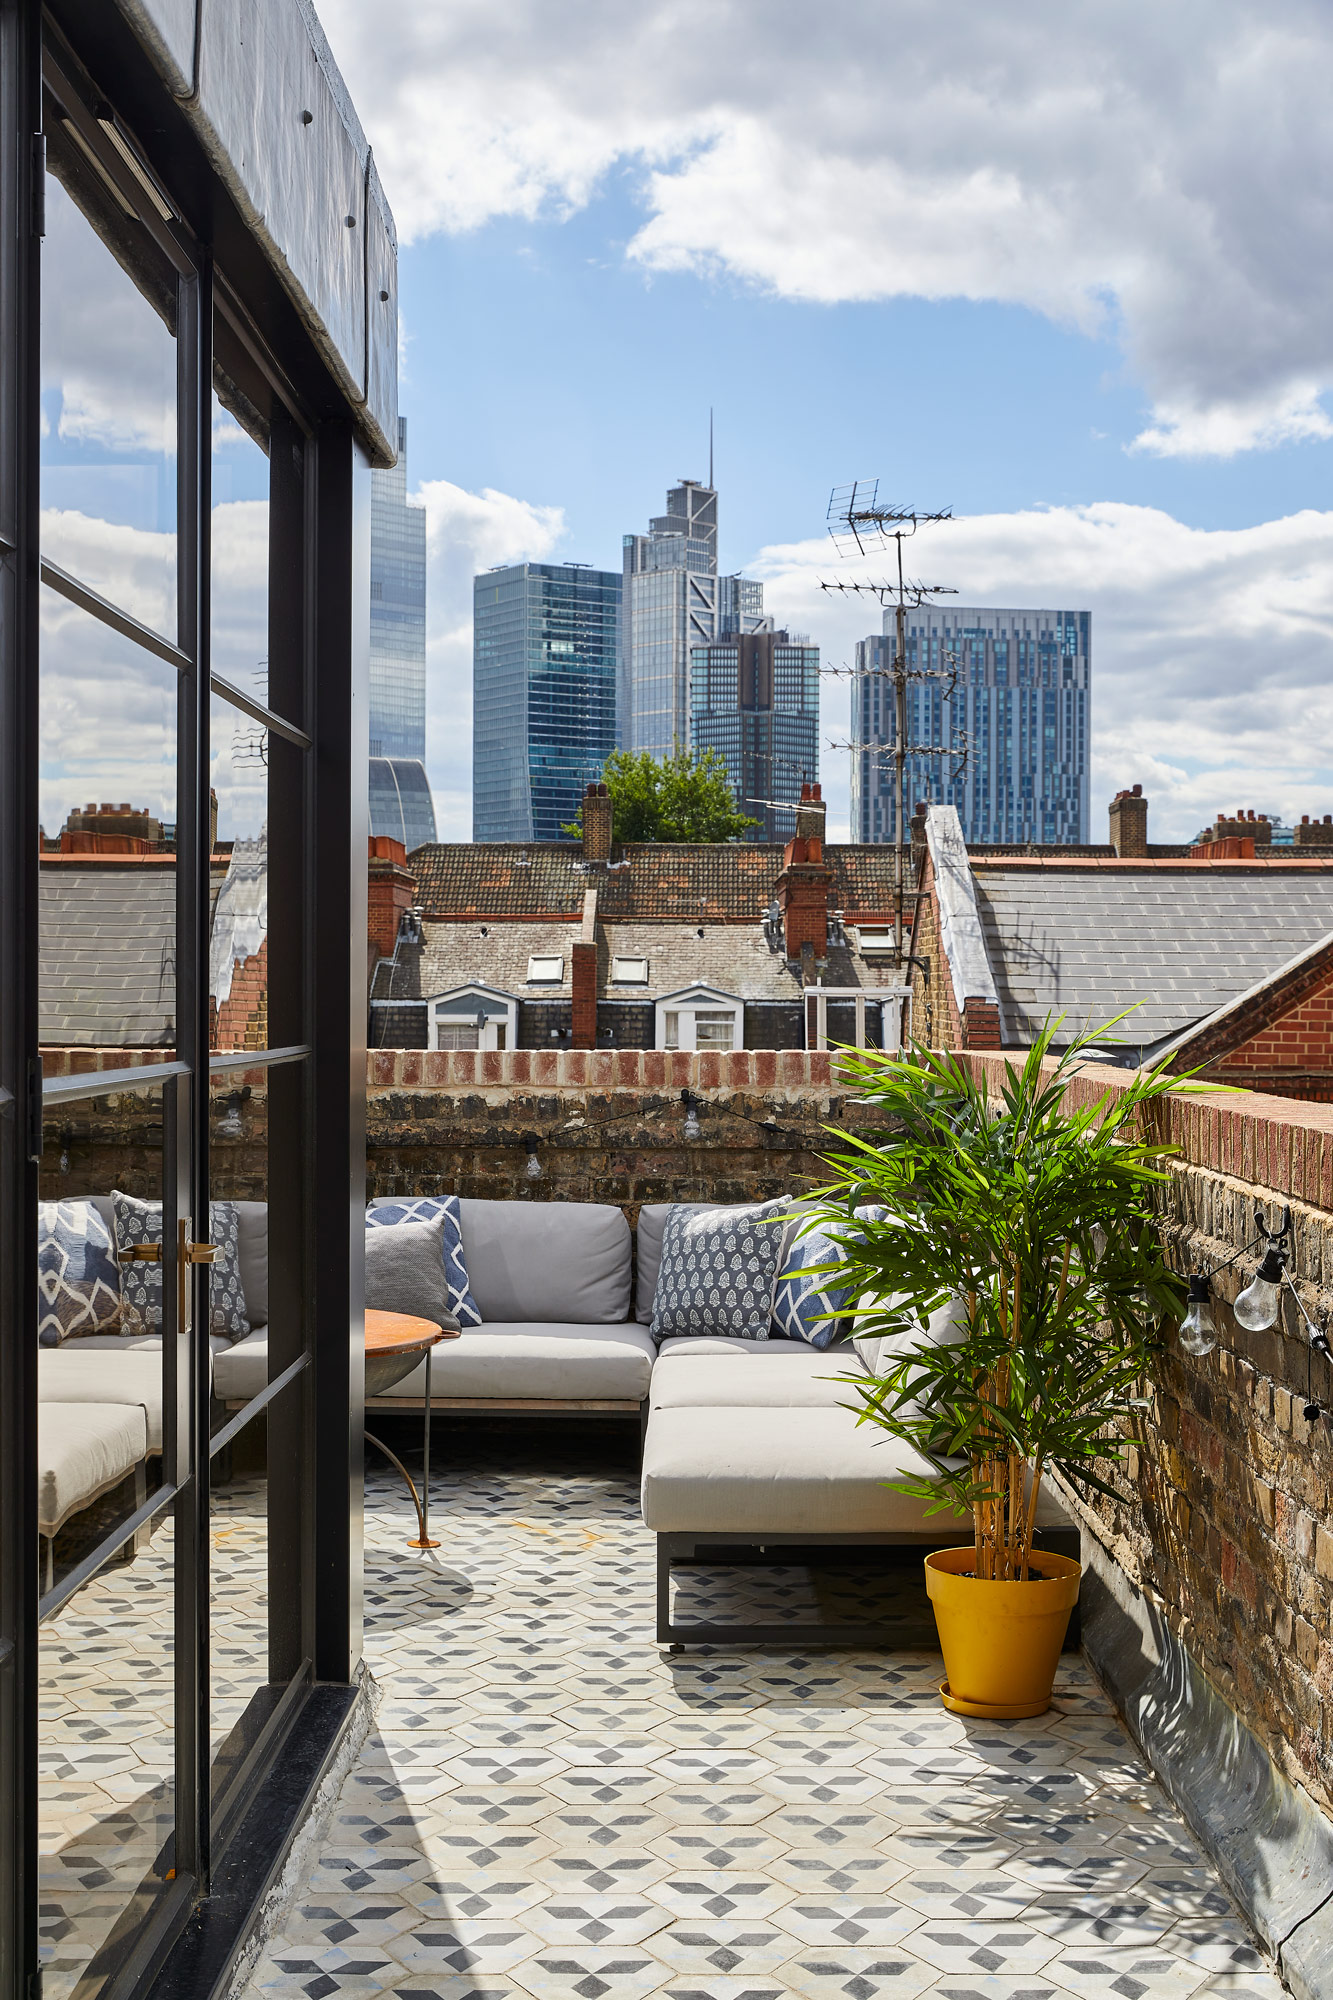 London rooftop apartment with upholstered outdoor furniture and reclaimed tiled patio